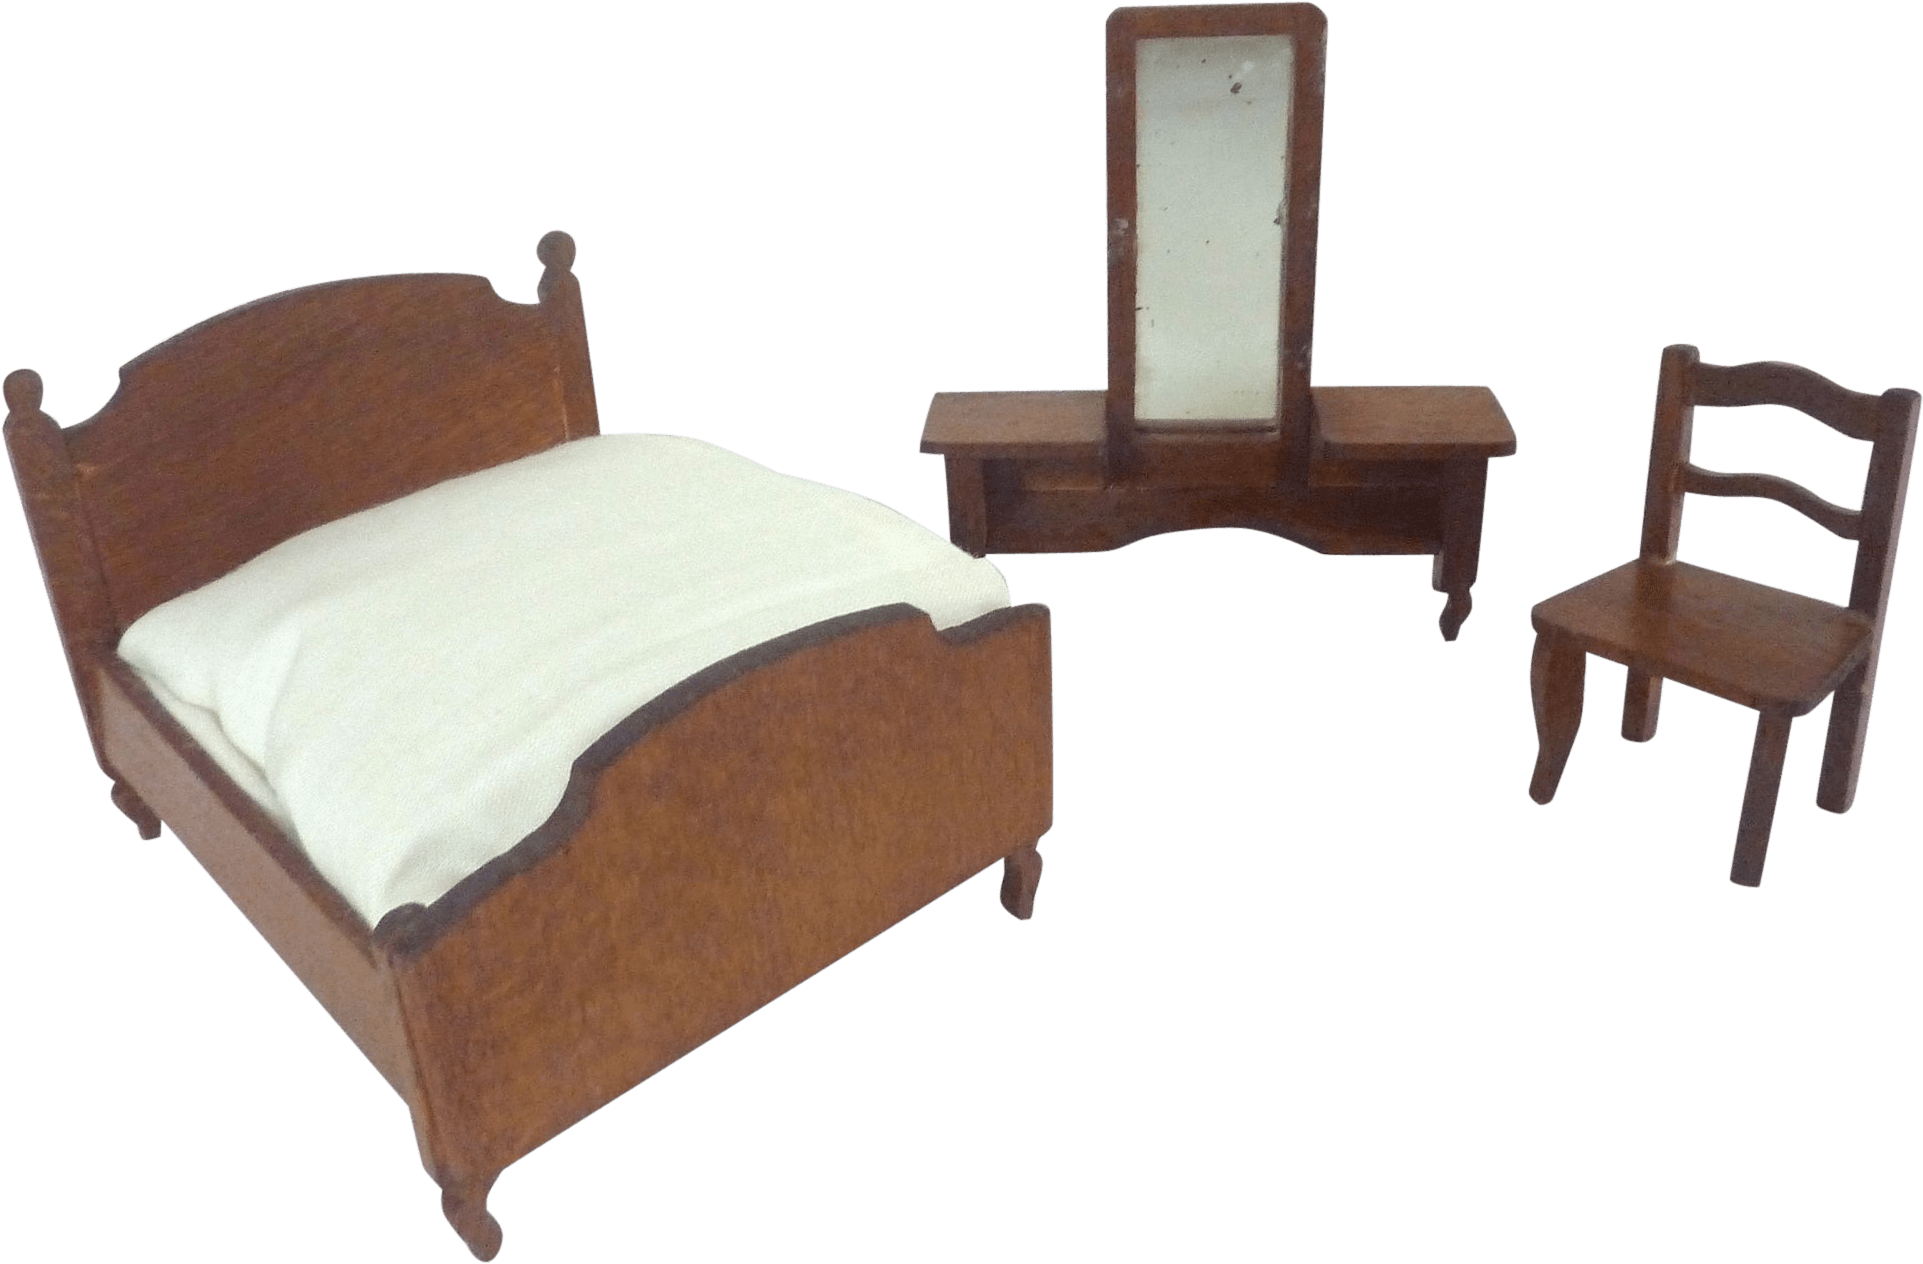 hight resolution of ashley doll house full sleigh bed how to make cardboard dollhouse 1922x1922